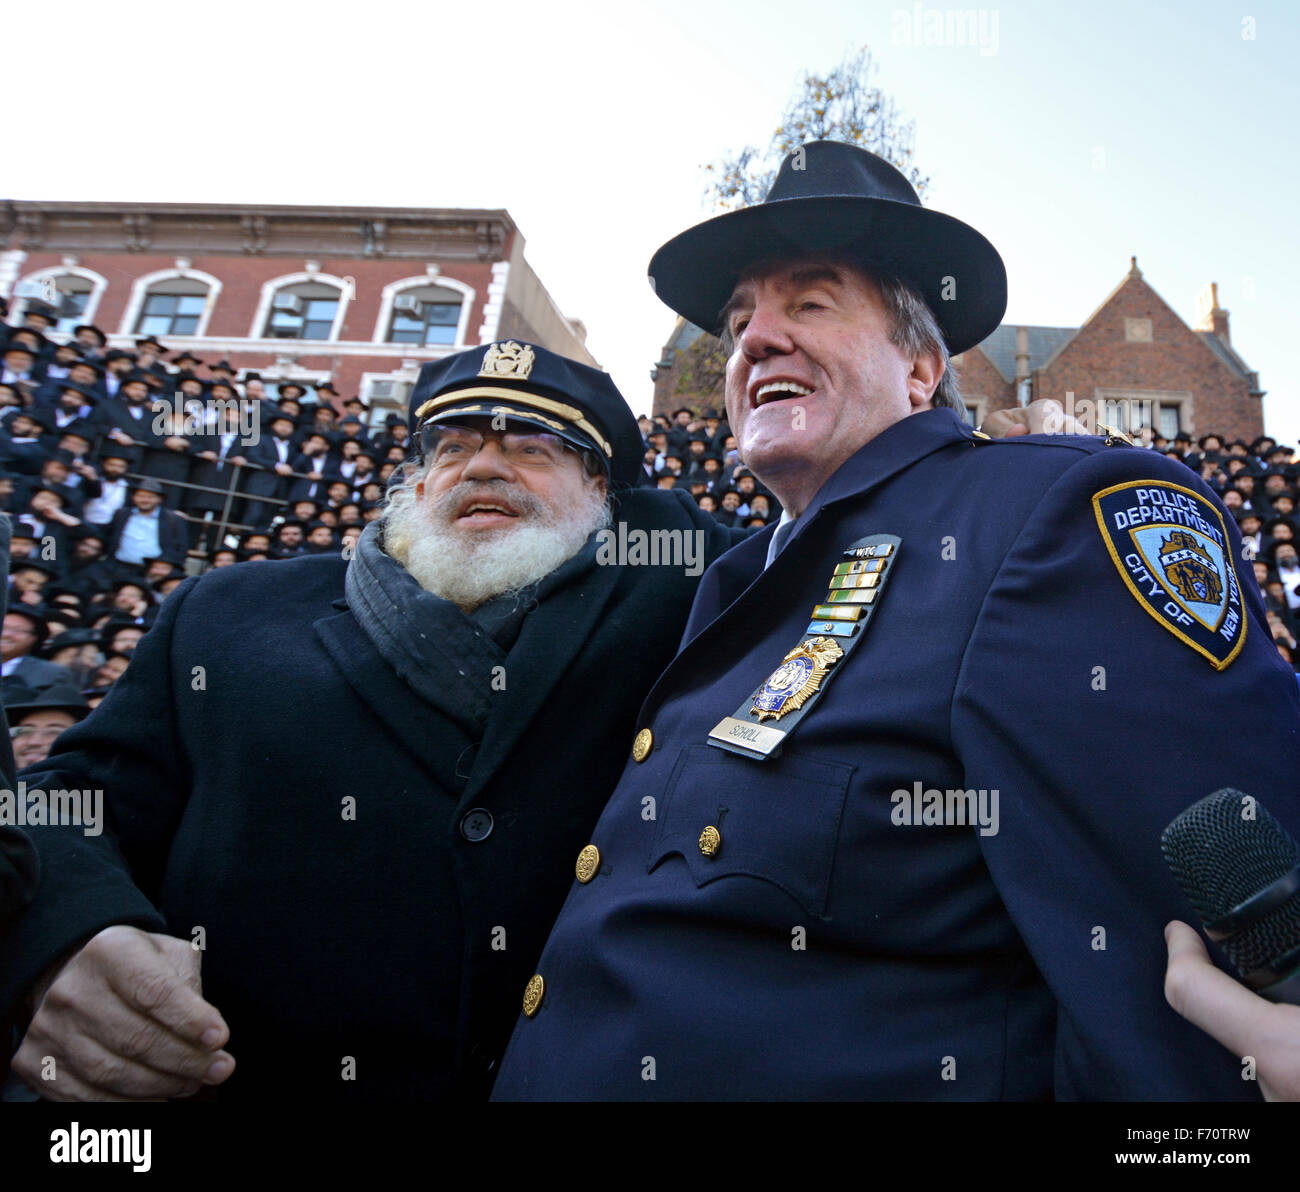 Hasidic Hats: Police Community Interaction Stock Photos & Police